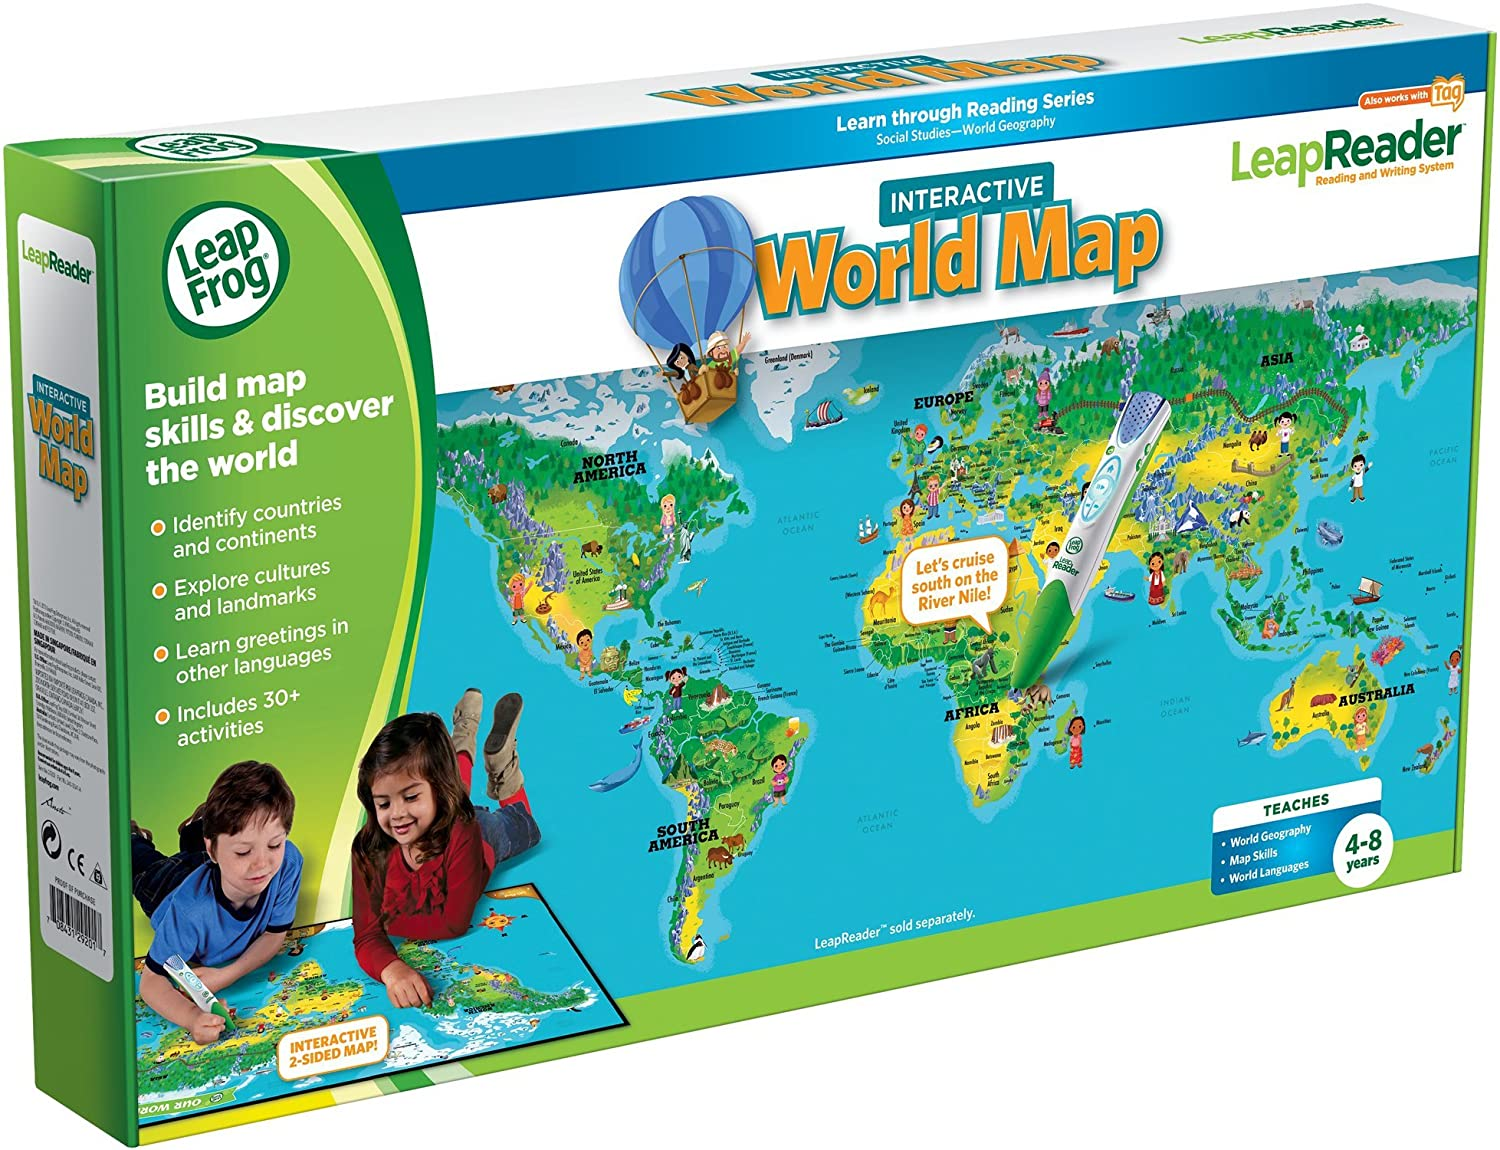 Leapfrog leapreader world map works with tag amazon toys leapfrog leapreader world map works with tag amazon toys games gumiabroncs Gallery